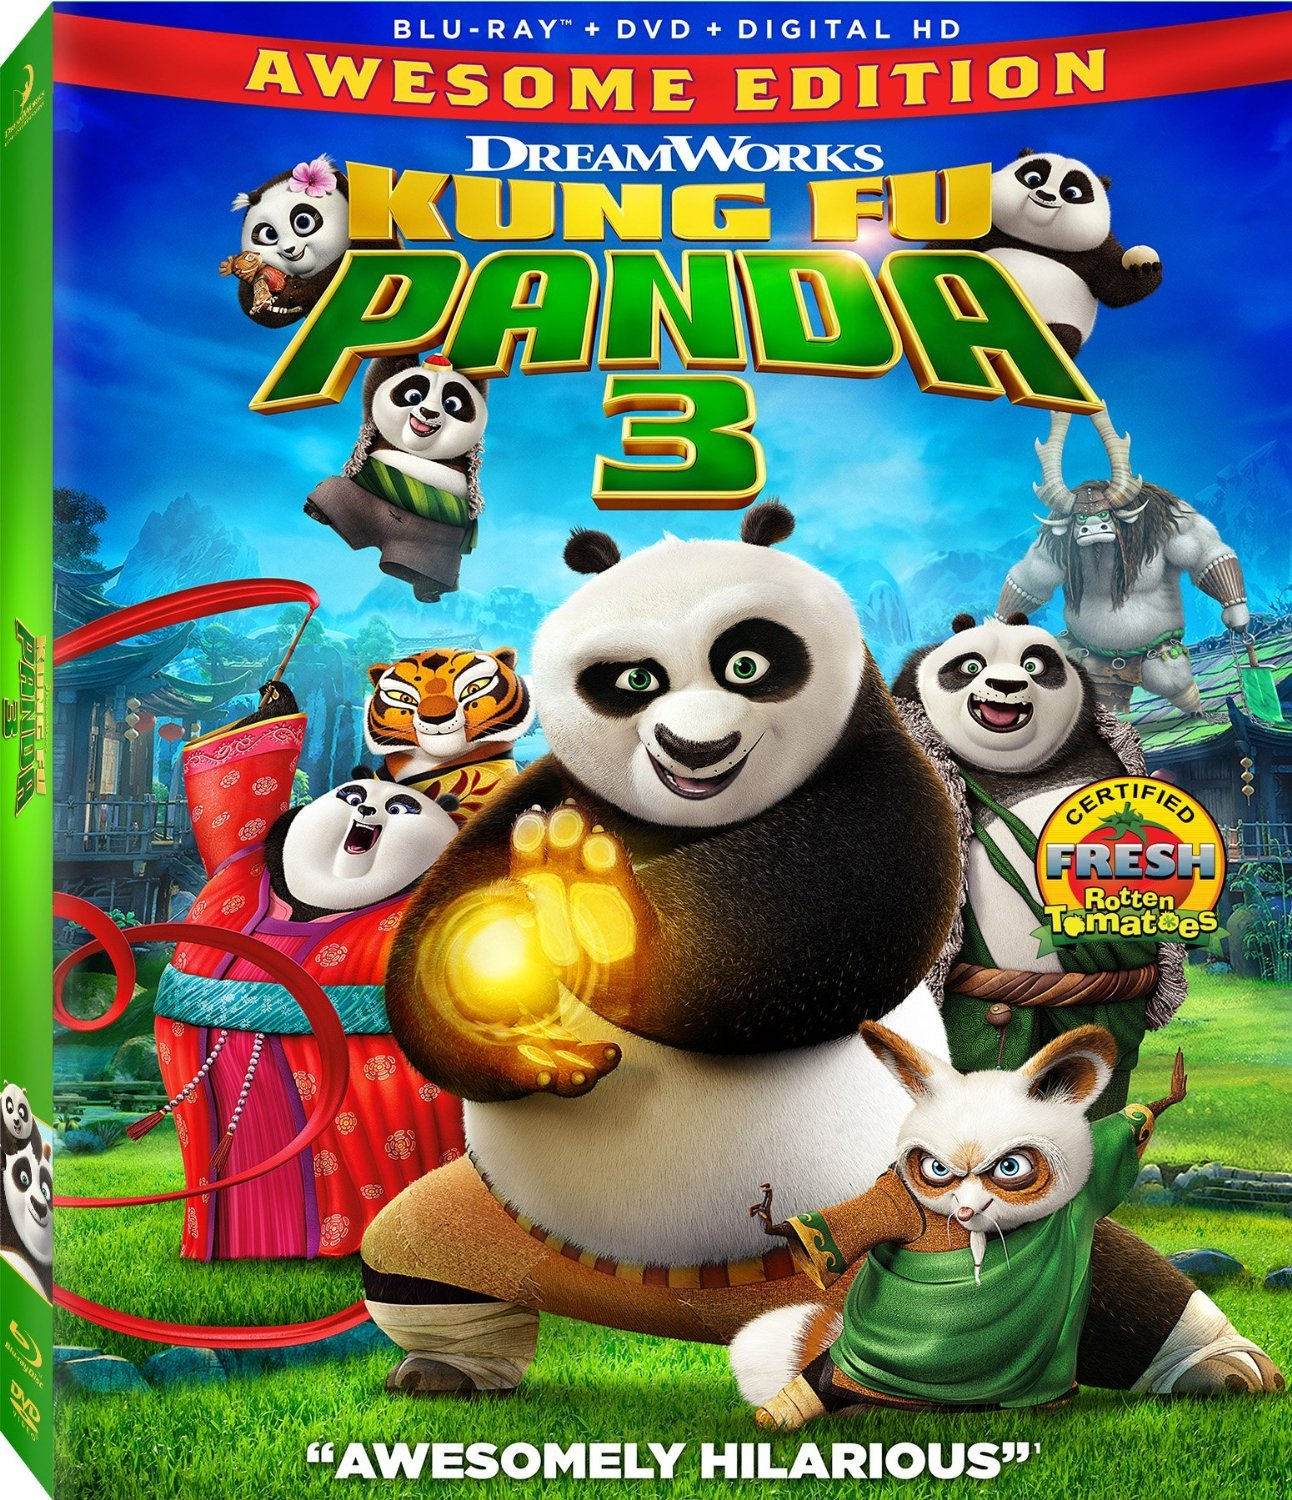 Kung Fu Panda 3 (2016) Blu-ray/DVD + Digital HD New